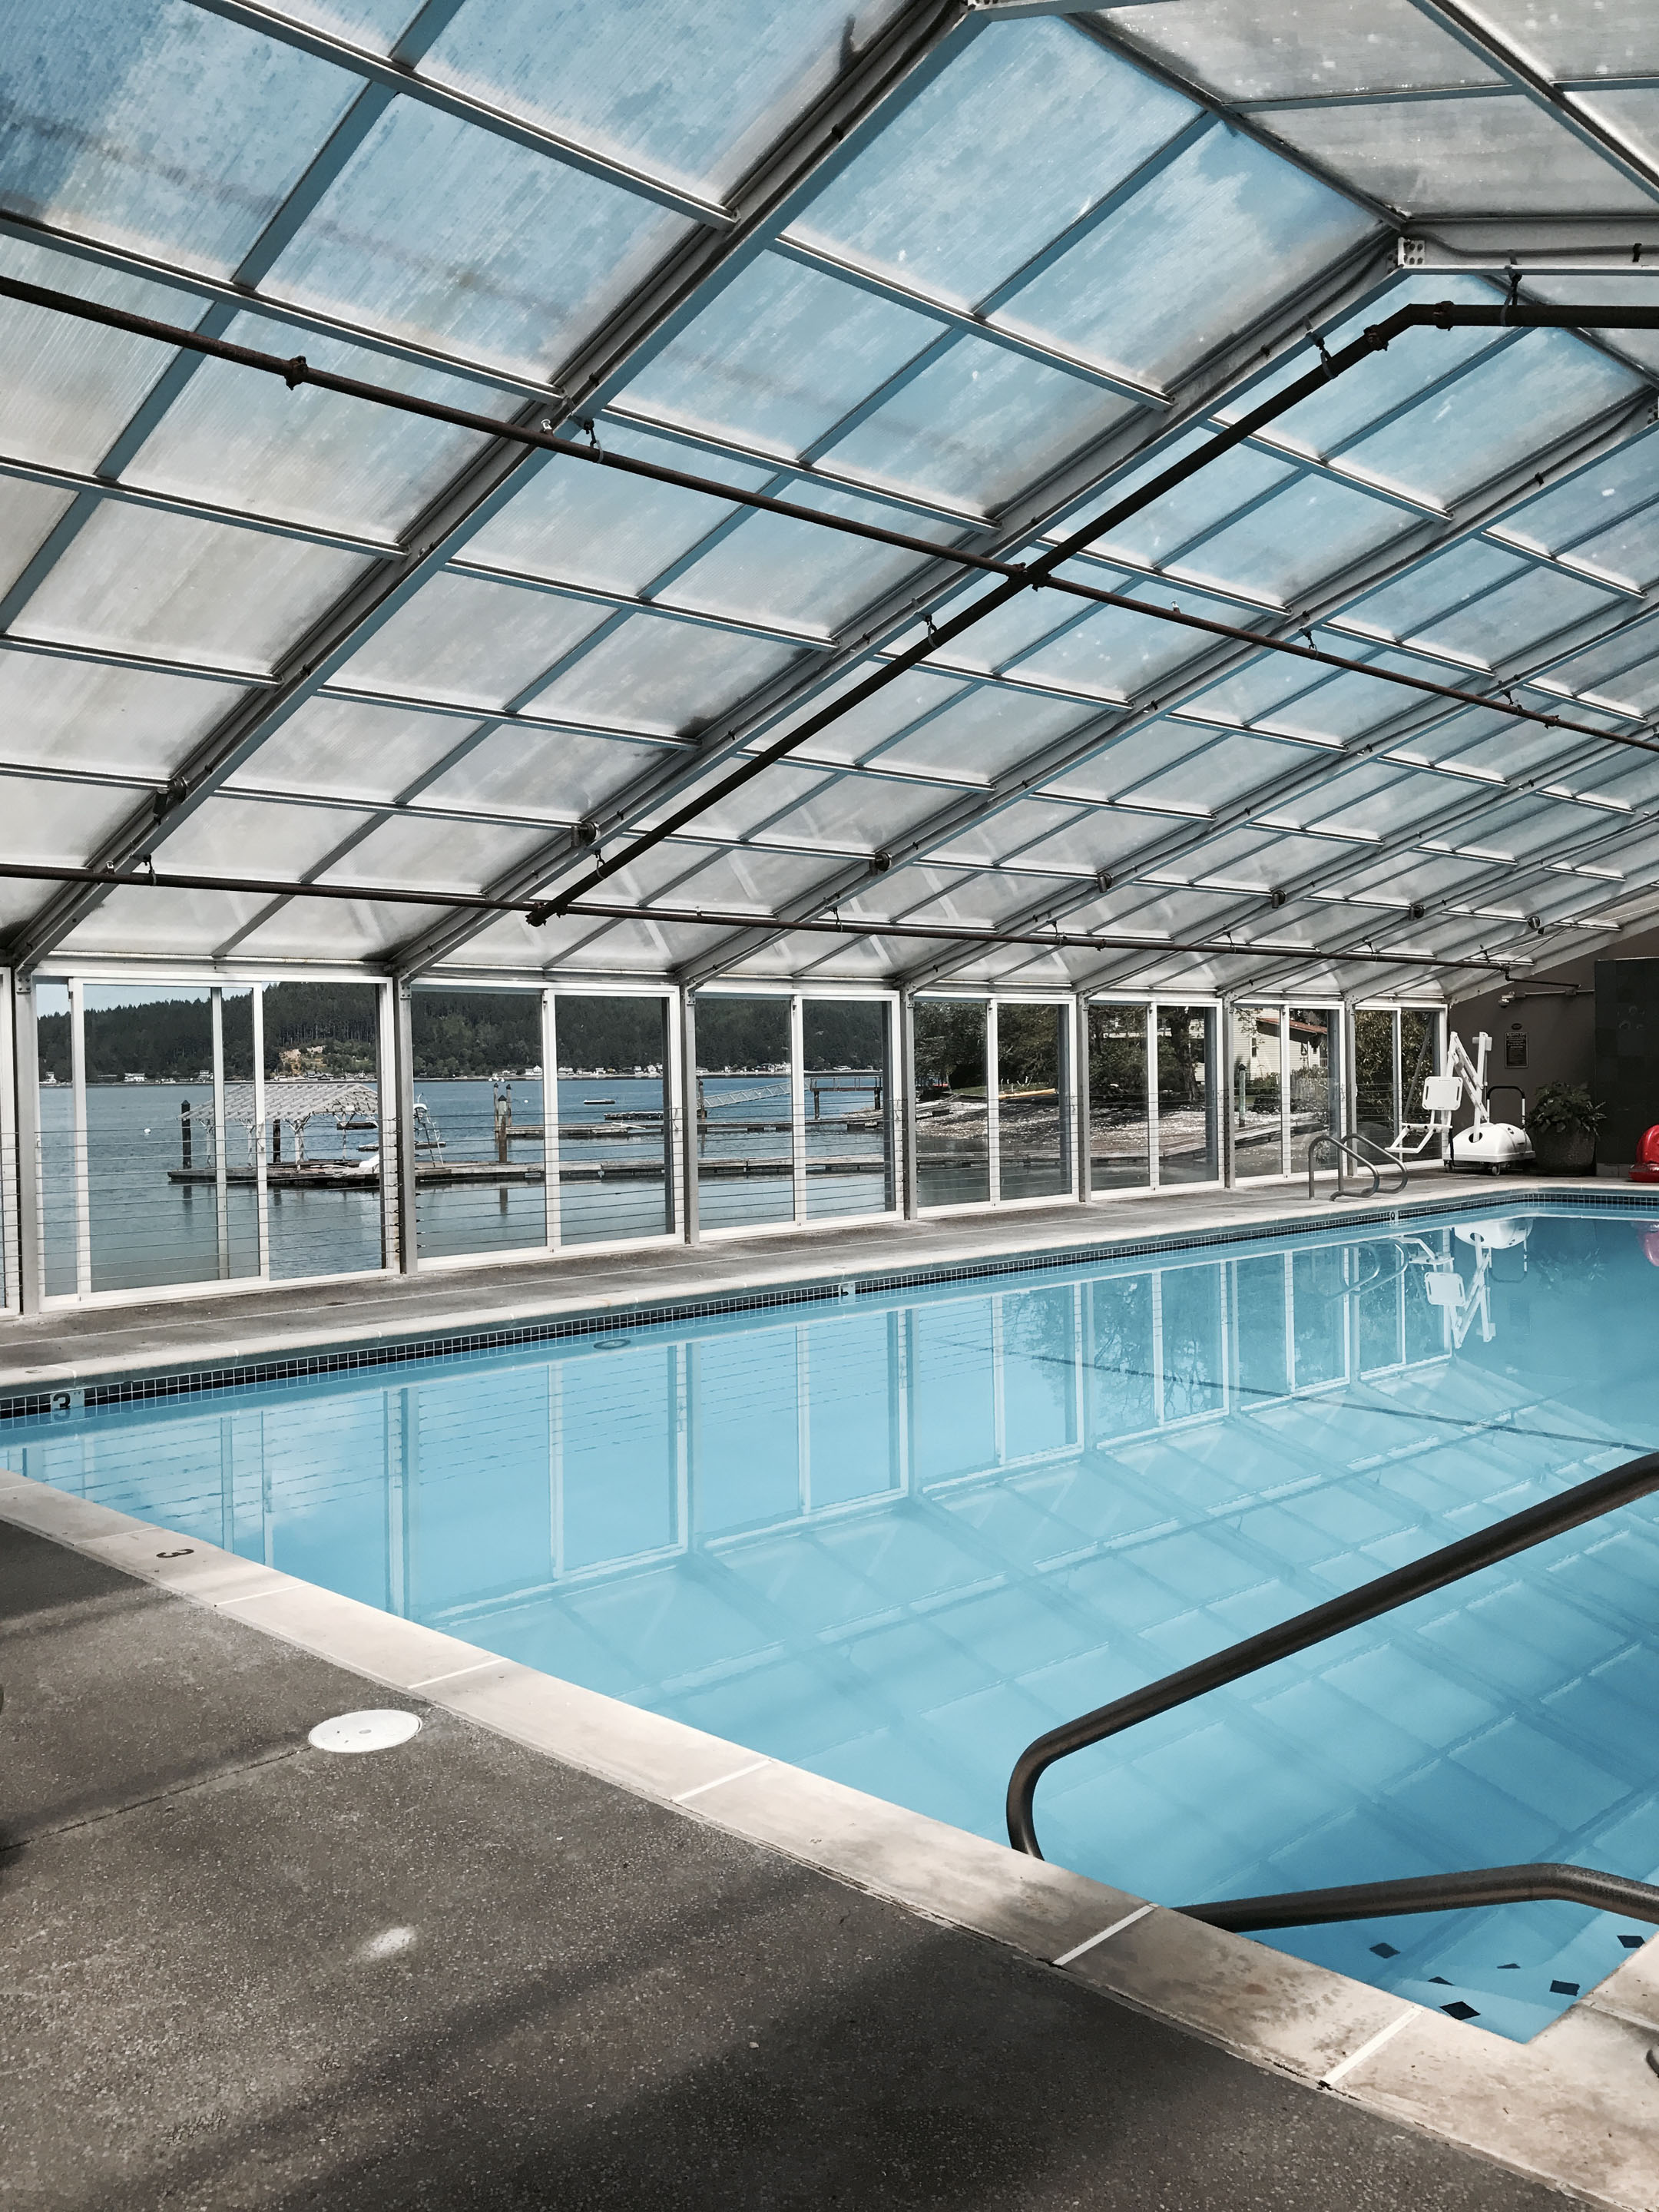 Alderbrook indoor pool